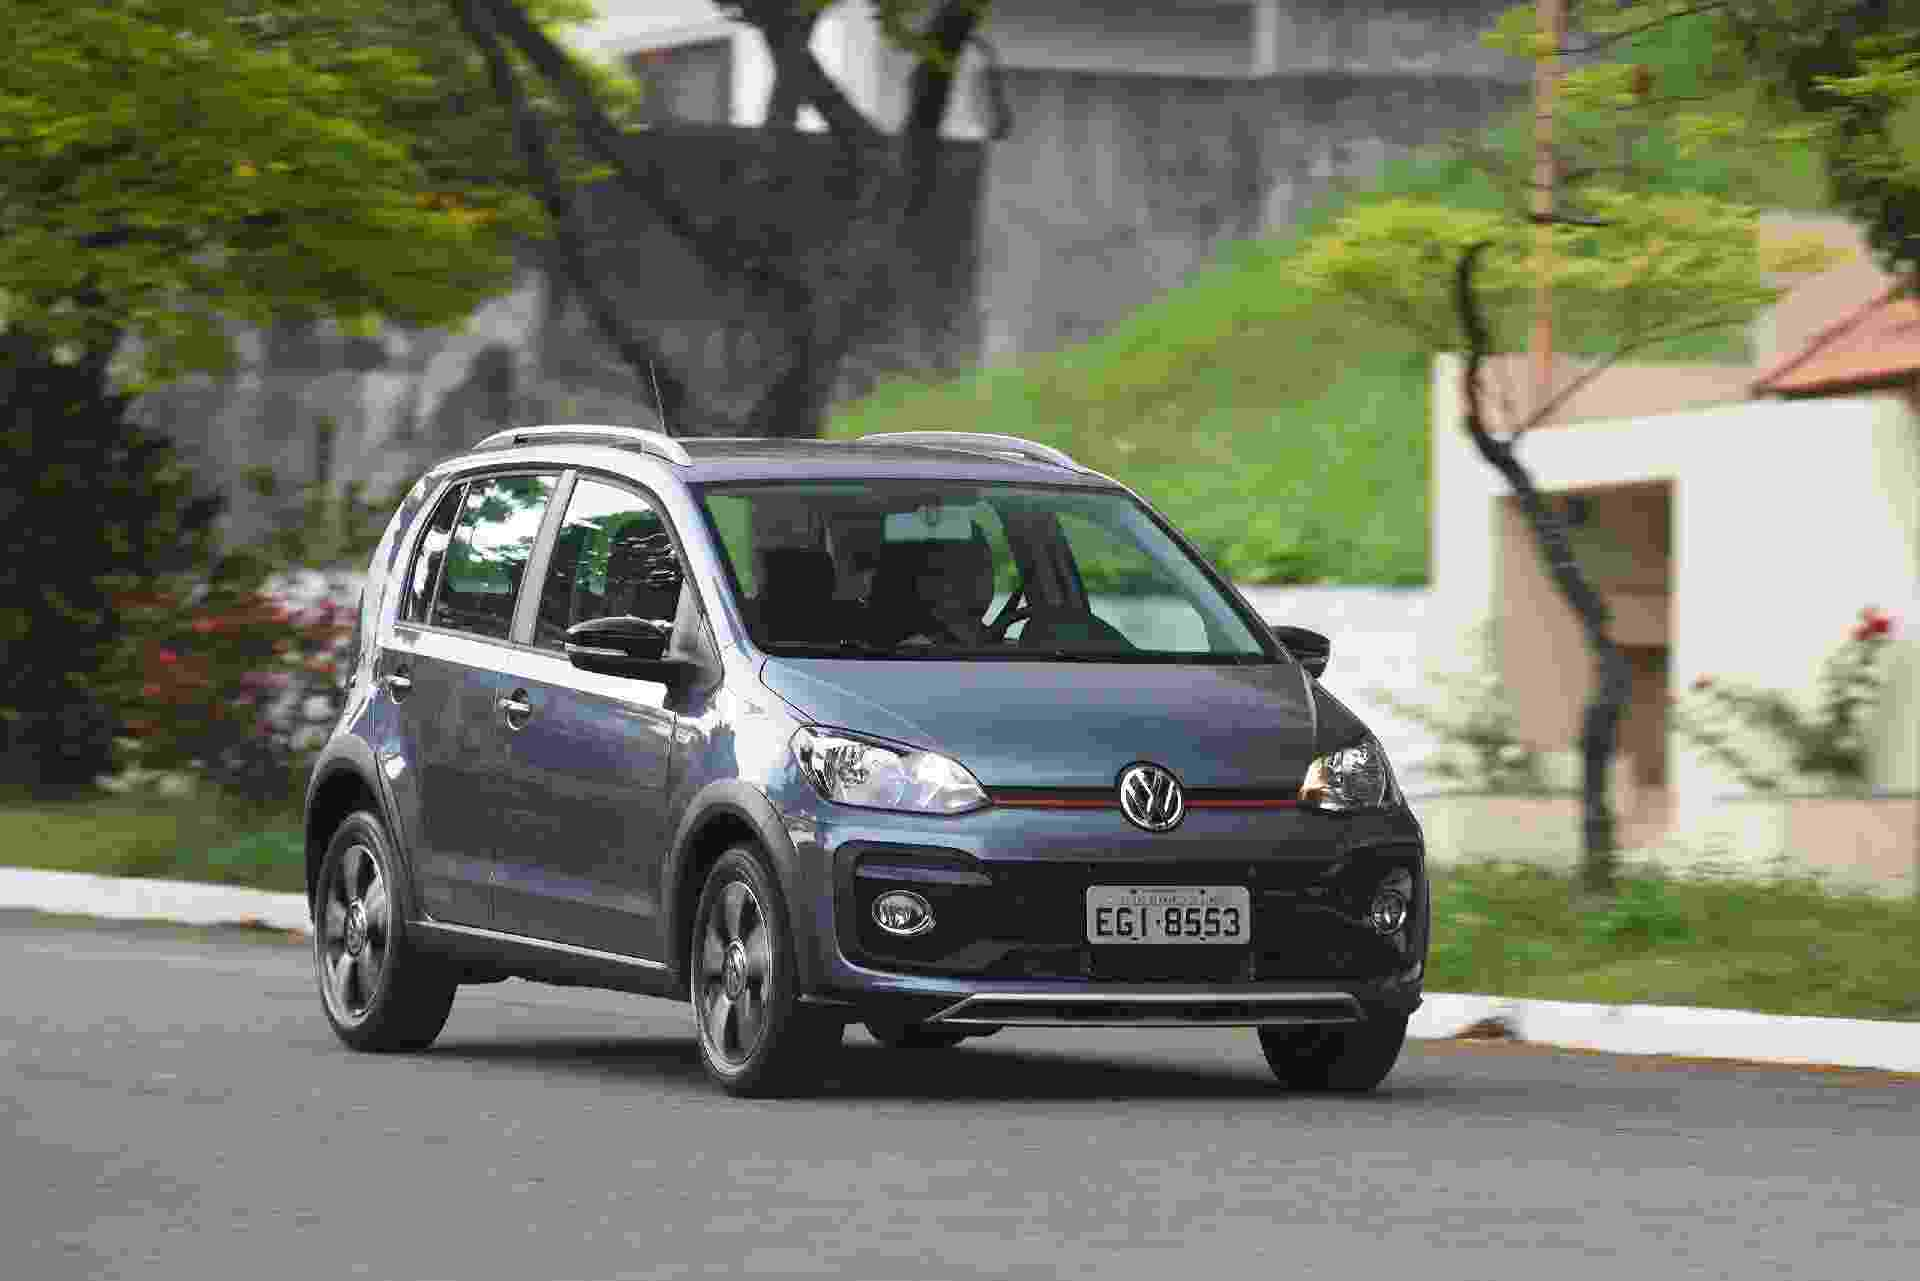 Volkswagen up! Xtreme - Murilo Góes/UOL